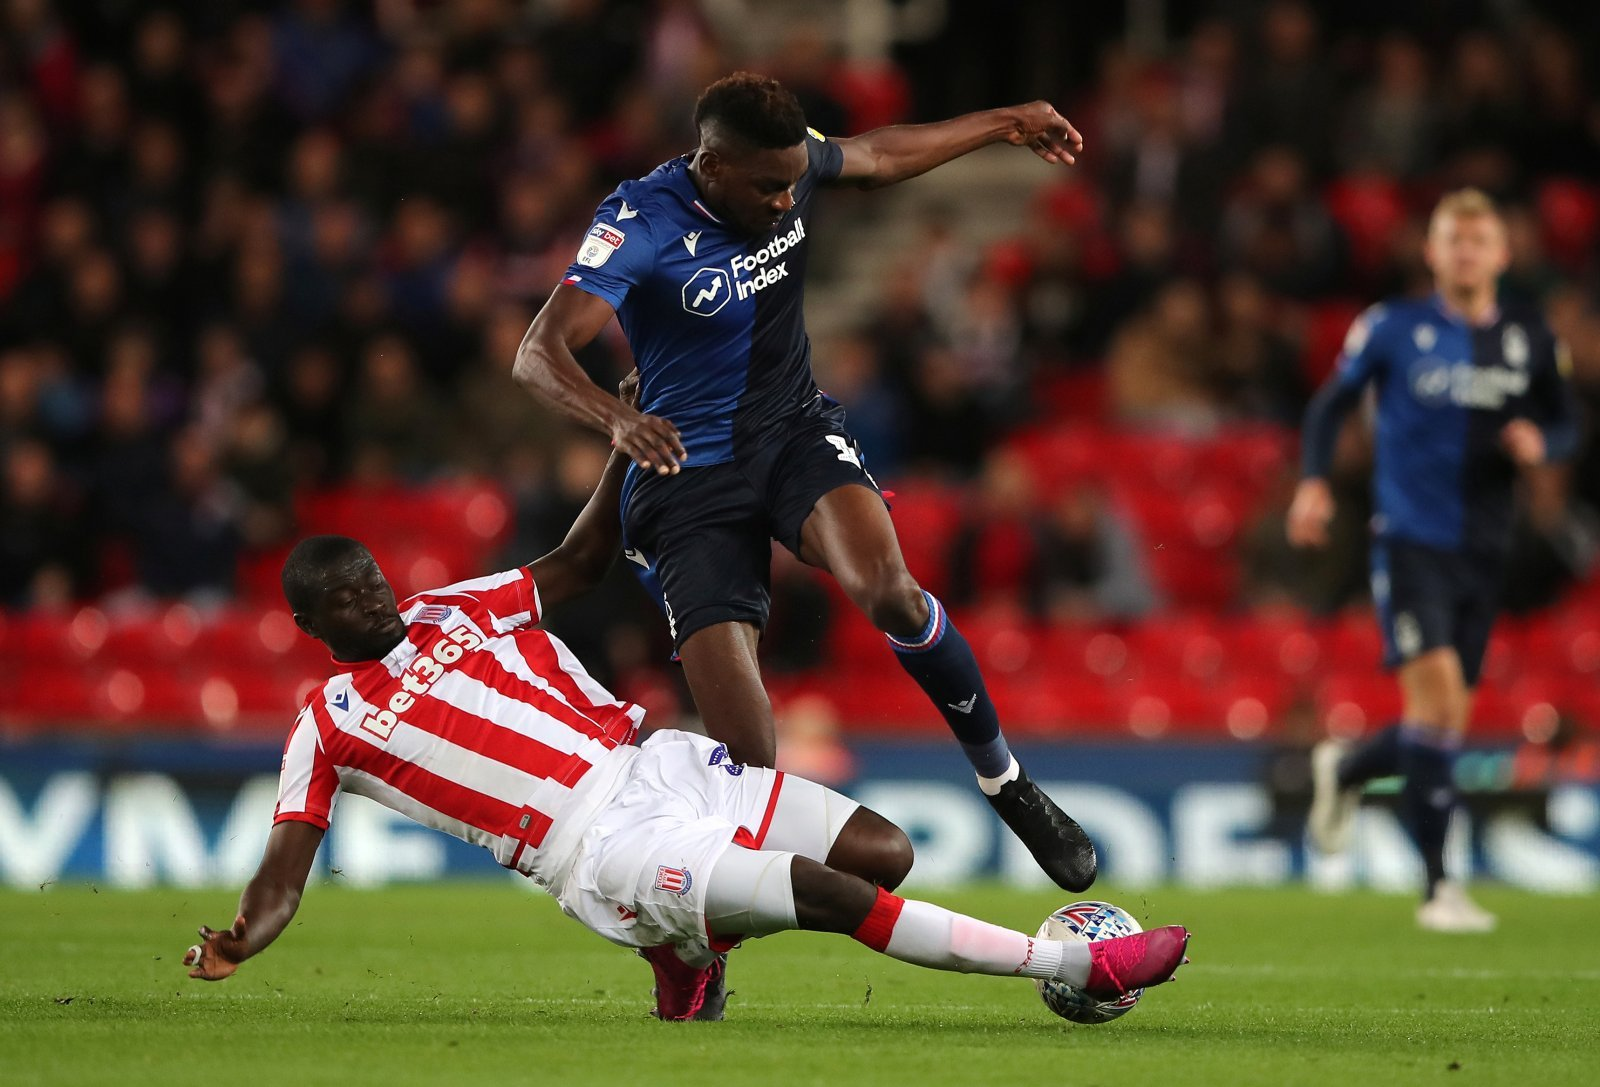 Nottingham Forest: Fans vote for Sammy Ameobi's header as their goal of the month